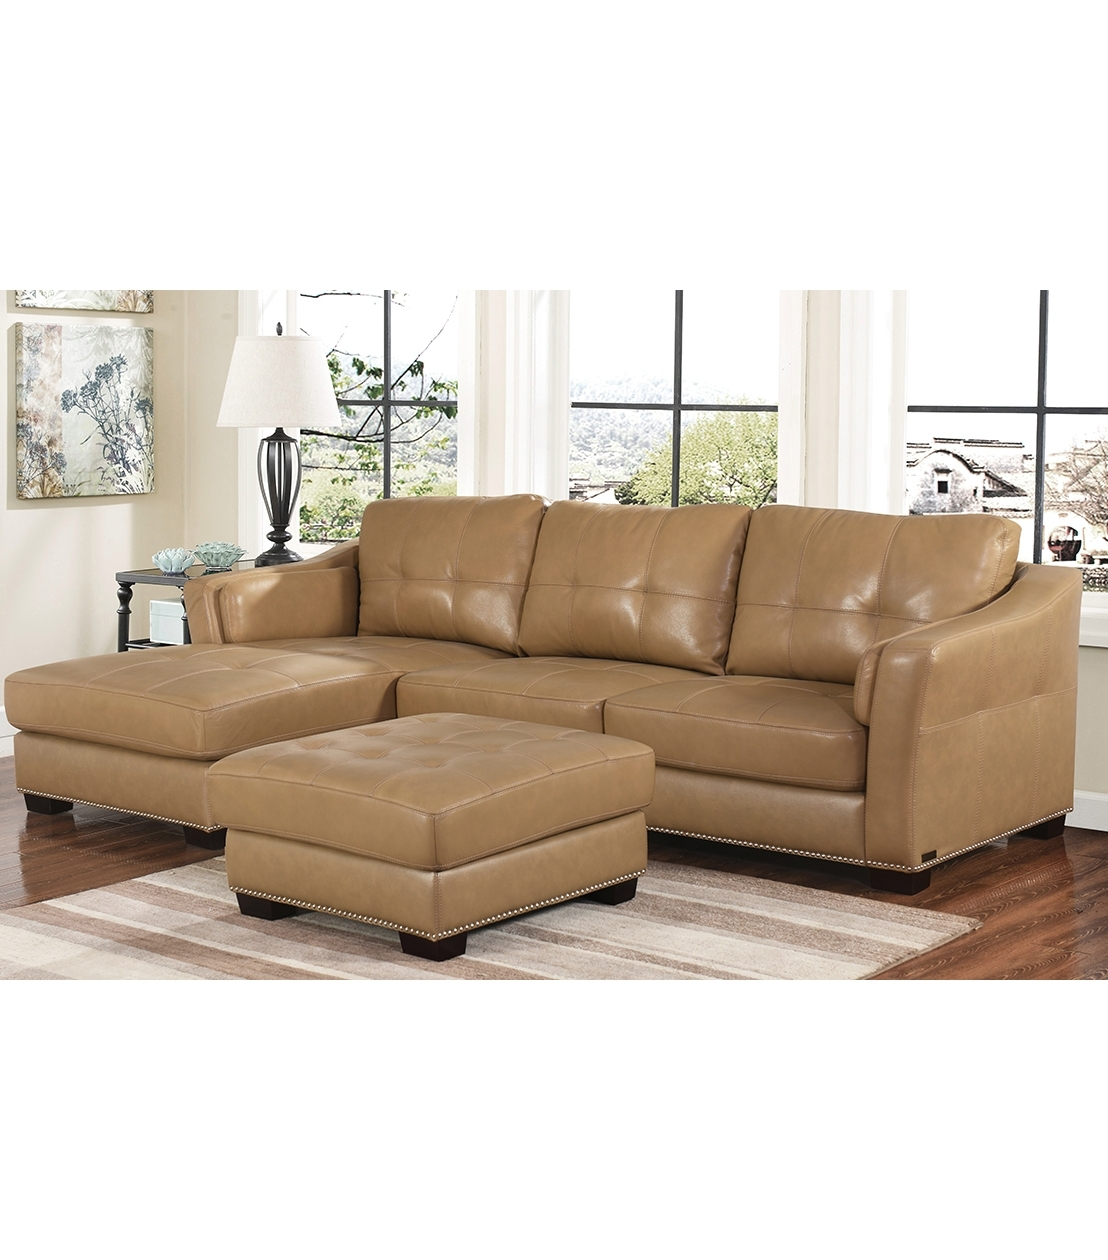 Abbyson Sectional Sofas Inside Widely Used Sectionals : Chelsie Leather Sectional (View 10 of 15)